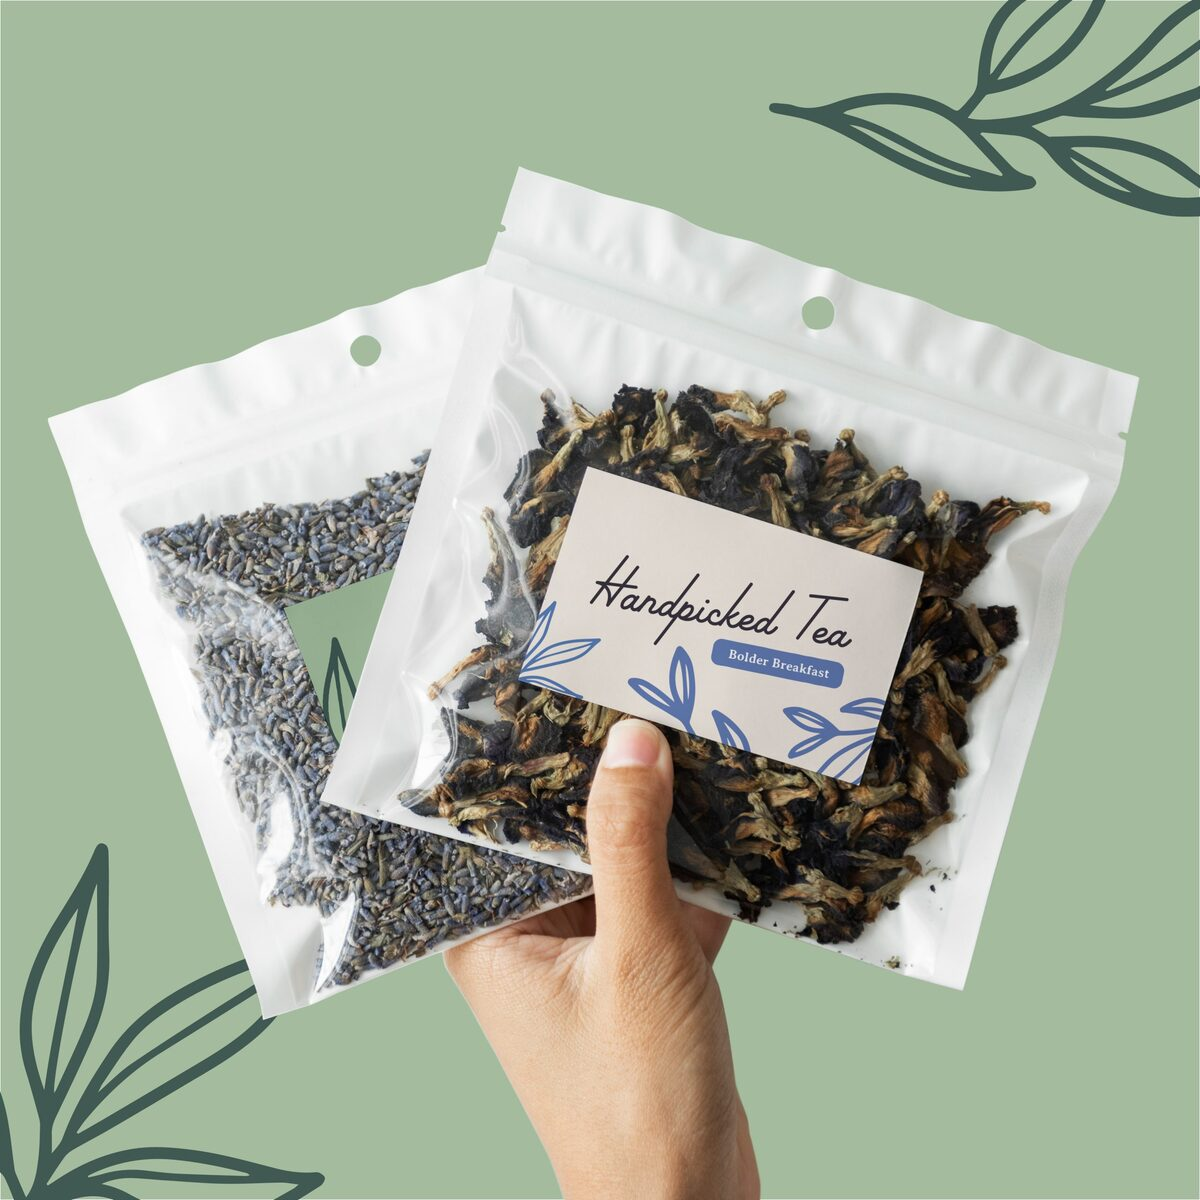 Hand holding up two bags of handpicked tea